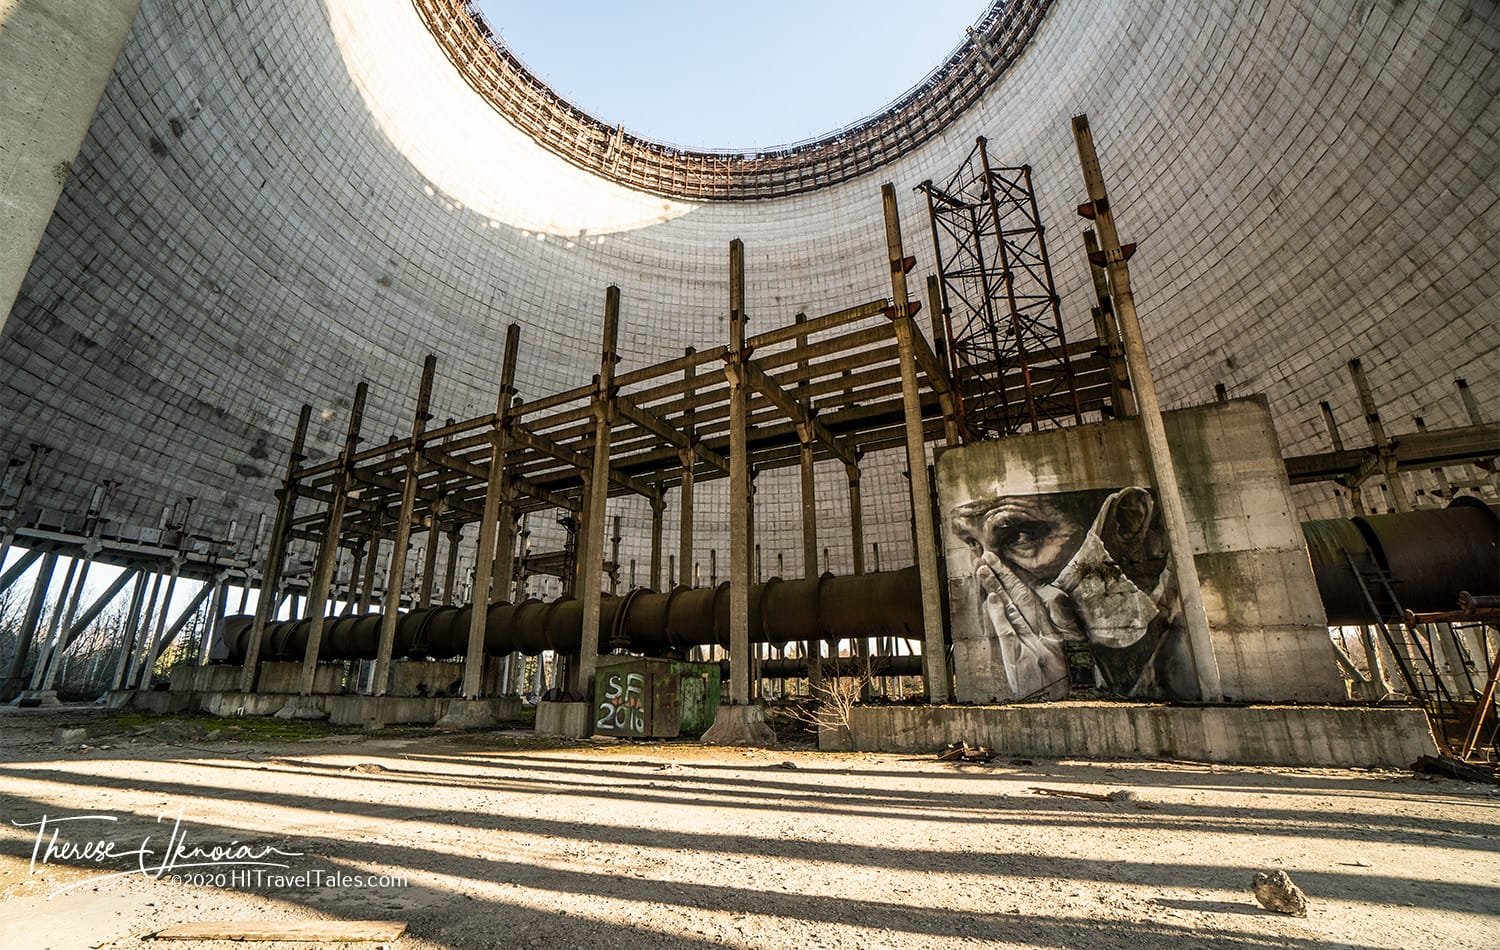 The cooling tower for Reactor 5 was under construction, too, but came to a halt. The mural by Australian artist Guido Van Helton was completed for the disaster's 30th anniversary and was the first street art done by permission in the Chernobyl zone.